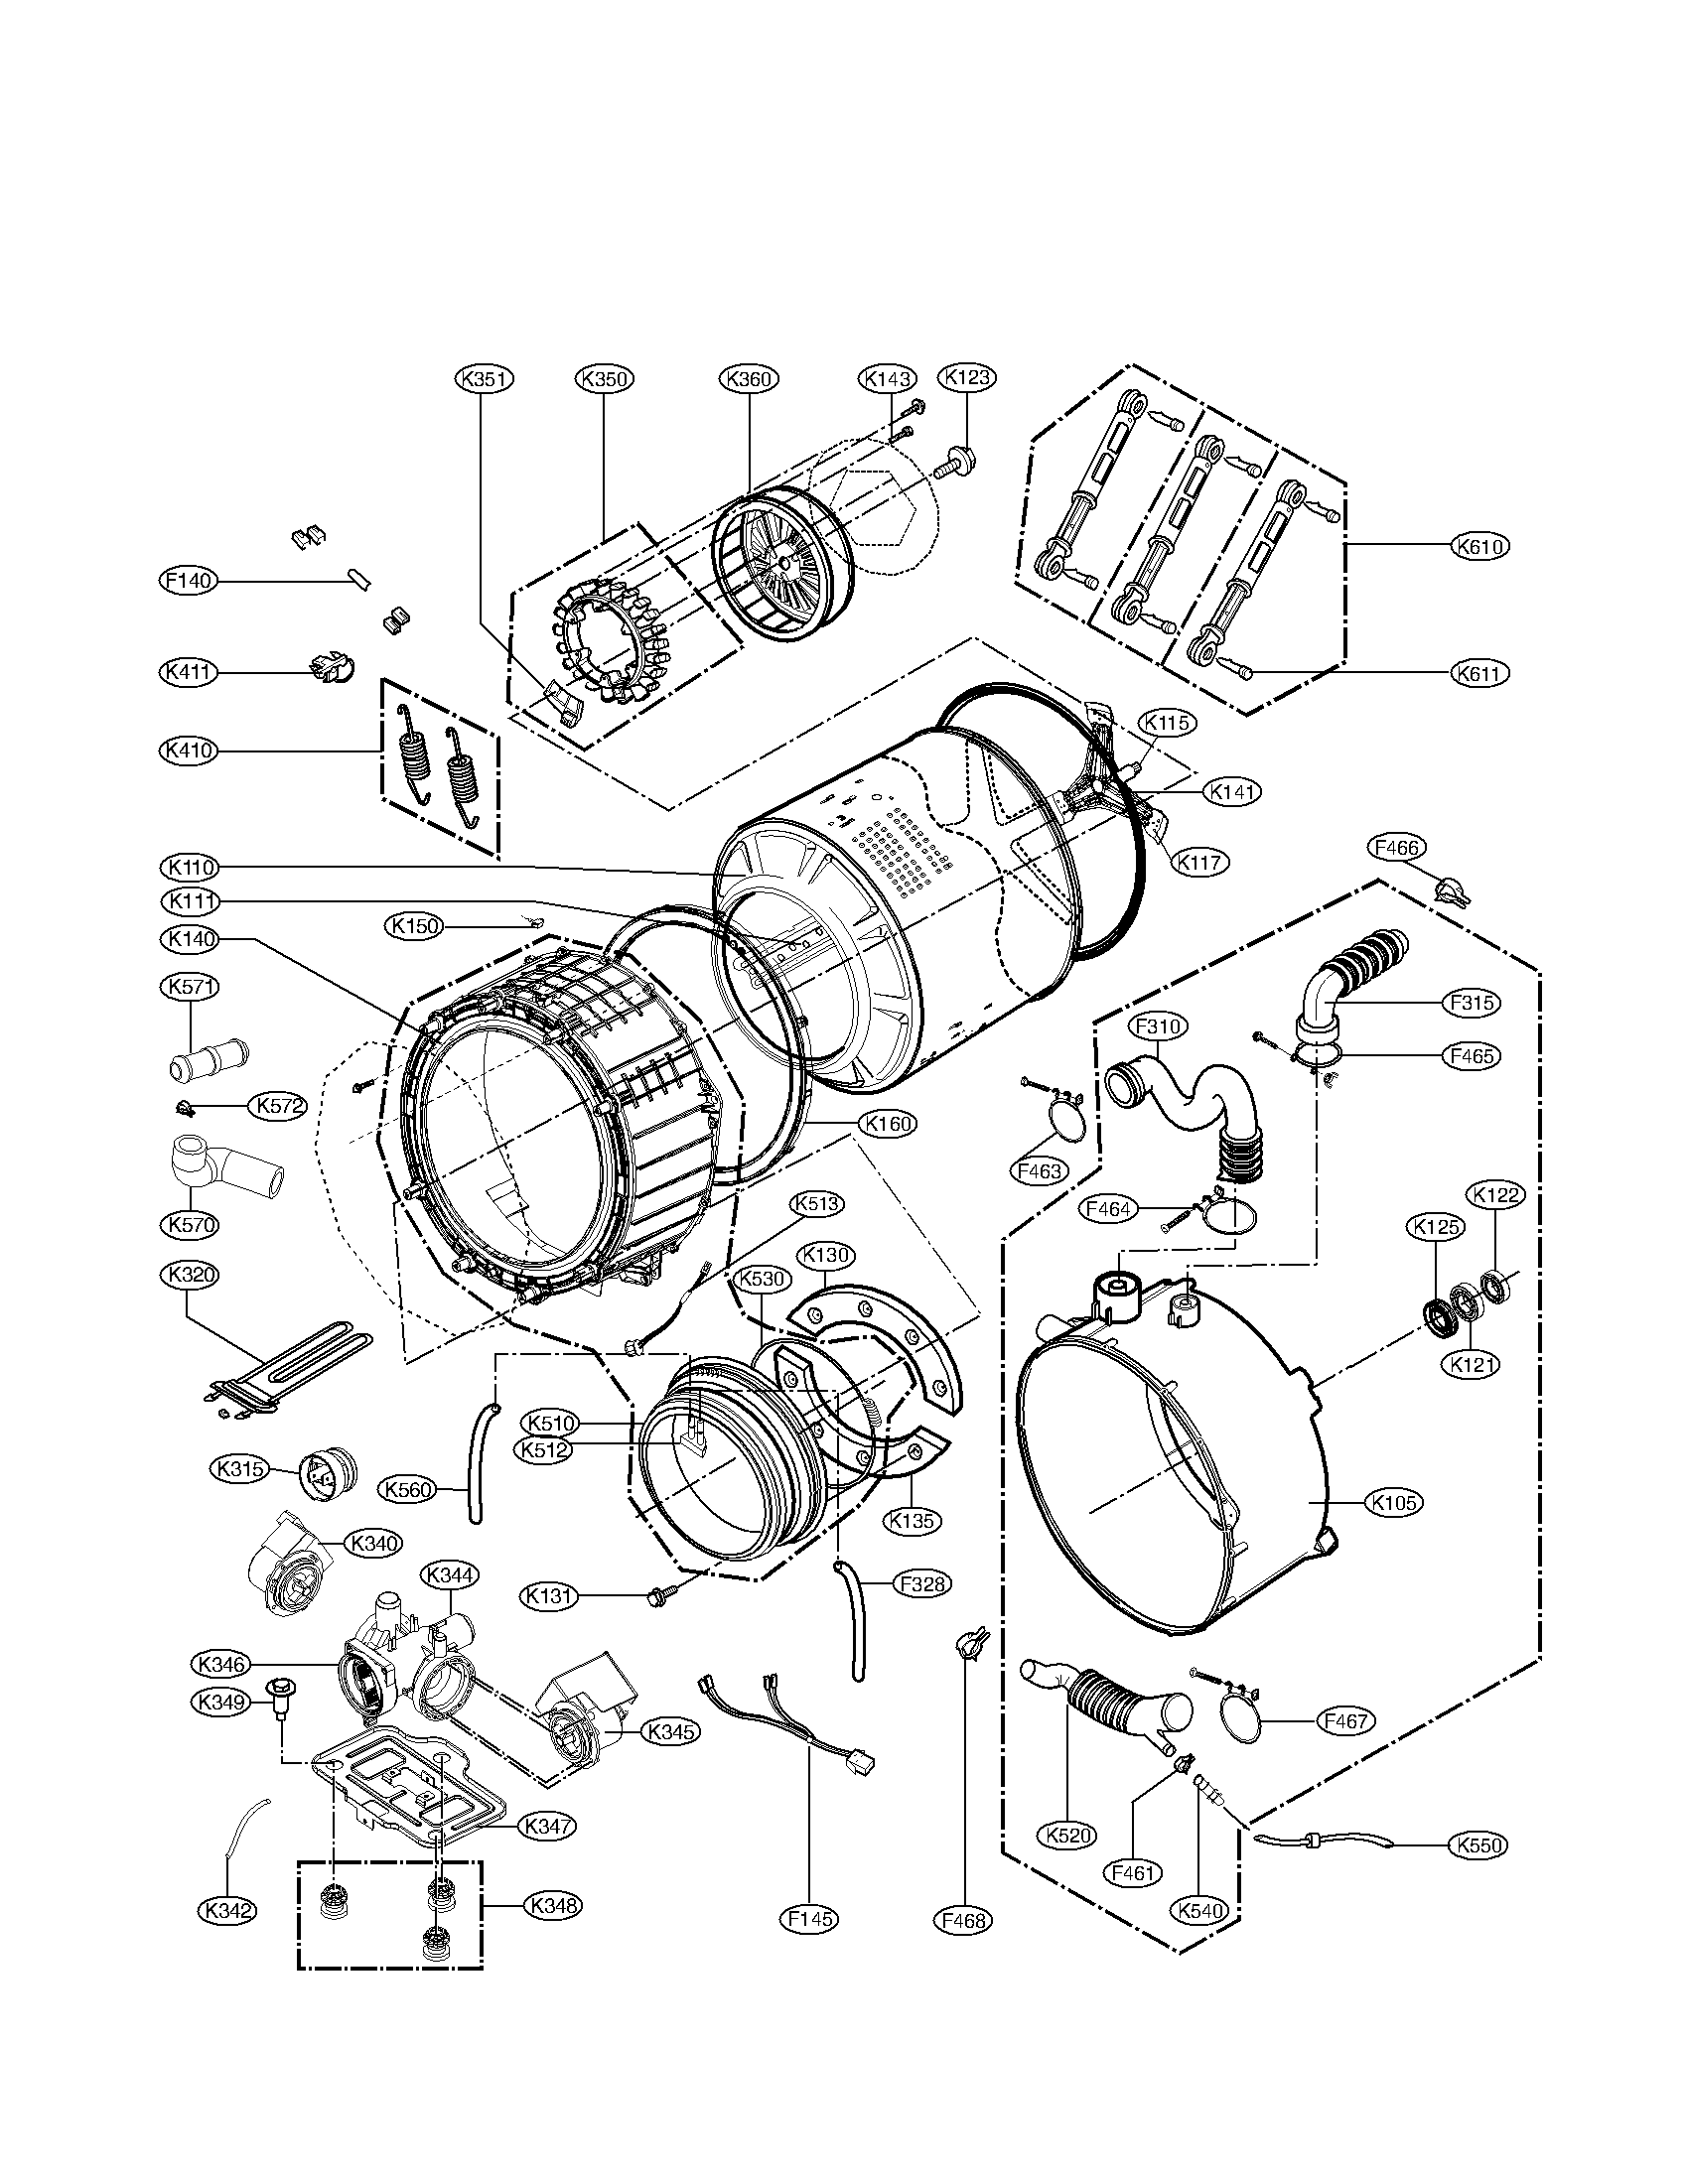 hight resolution of kenmore elite model 79642192900 residential washers genuine parts sears kenmore elite dryer parts wiring diagram for kenmore elite dryer front loader